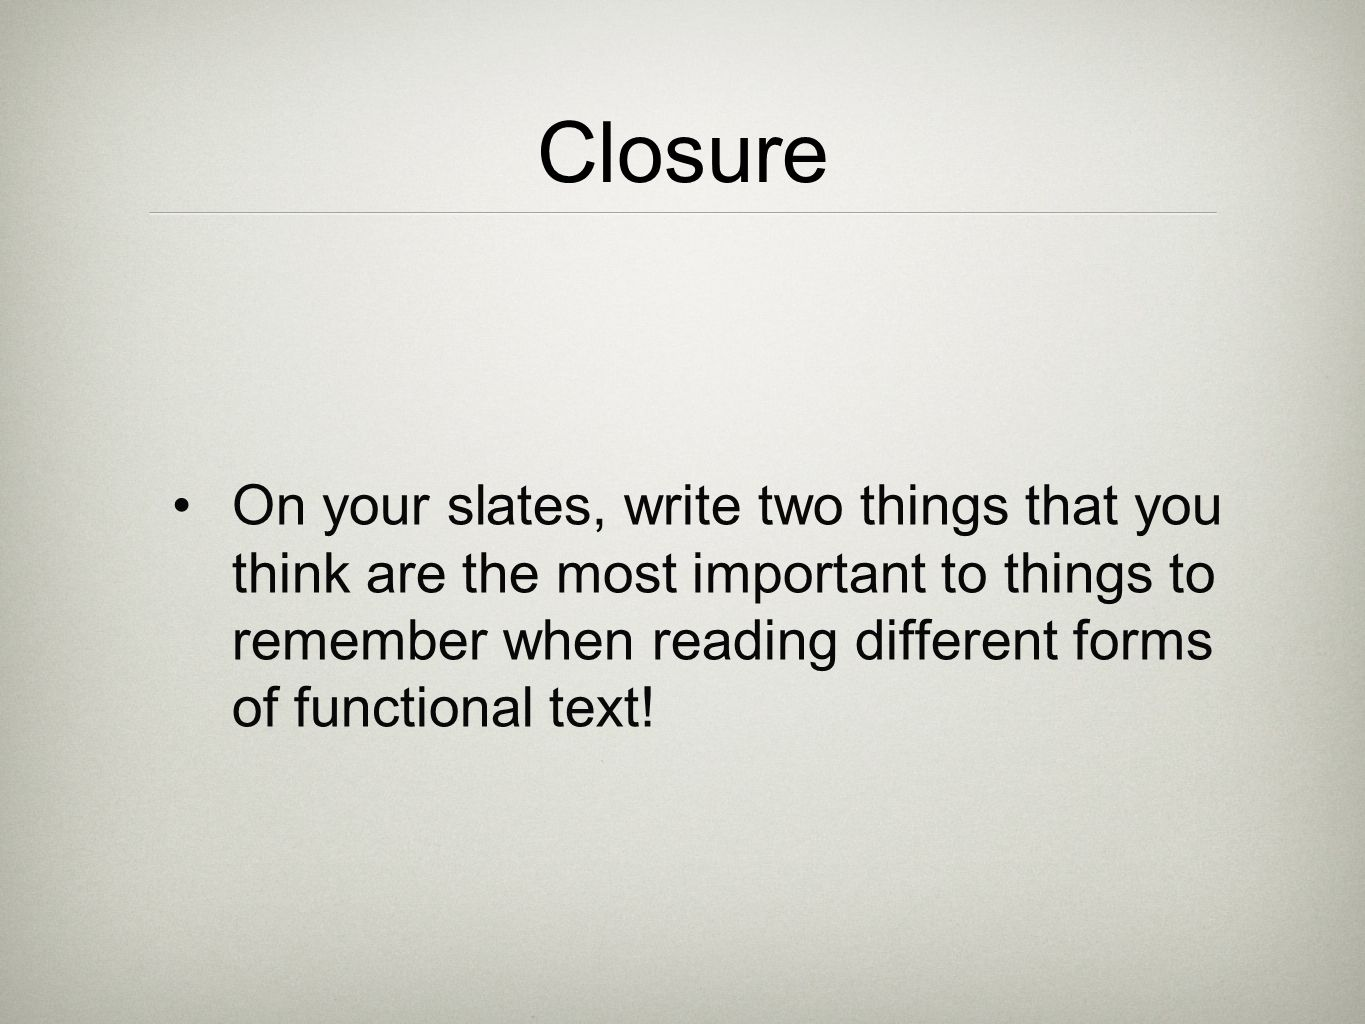 Closure On your slates, write two things that you think are the most important to things to remember when reading different forms of functional text!